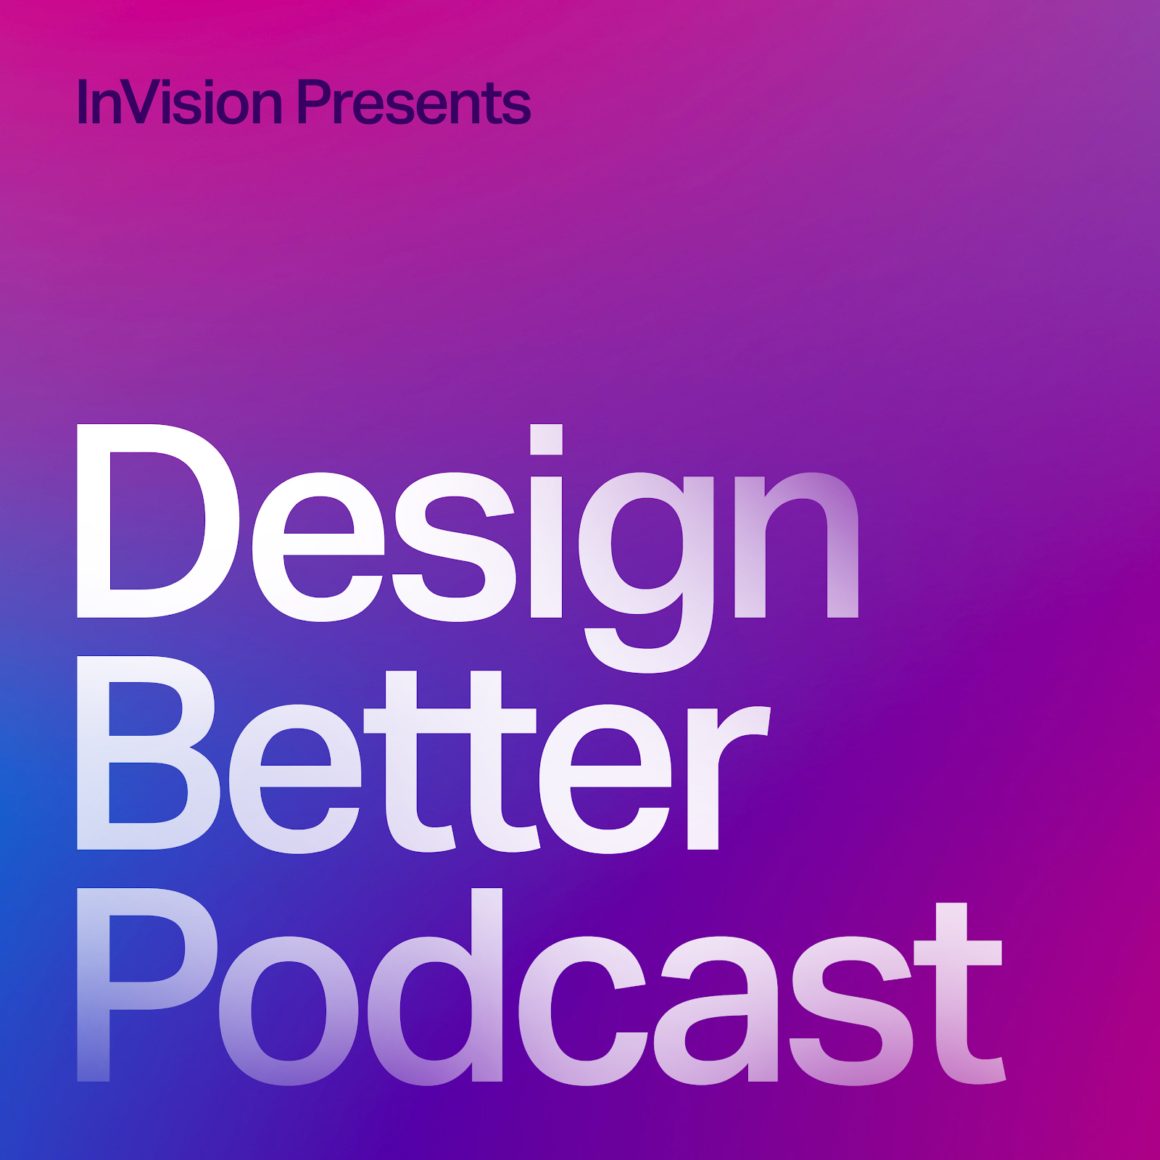 product design podcasts design better